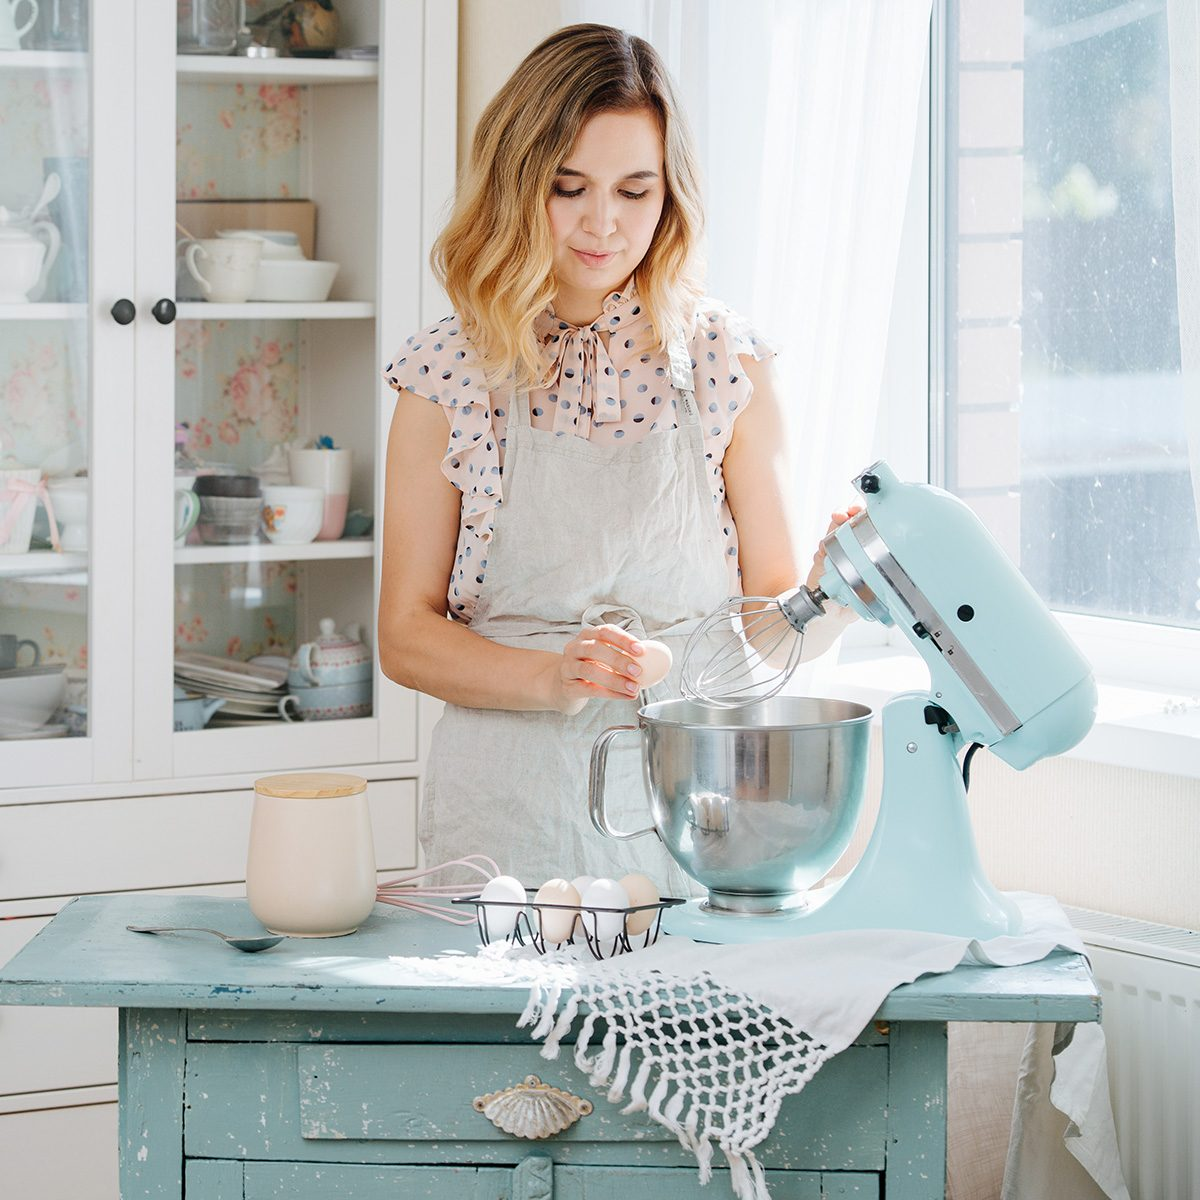 beautiful girl preparing dough in a food processor while standing in a bright kitchen